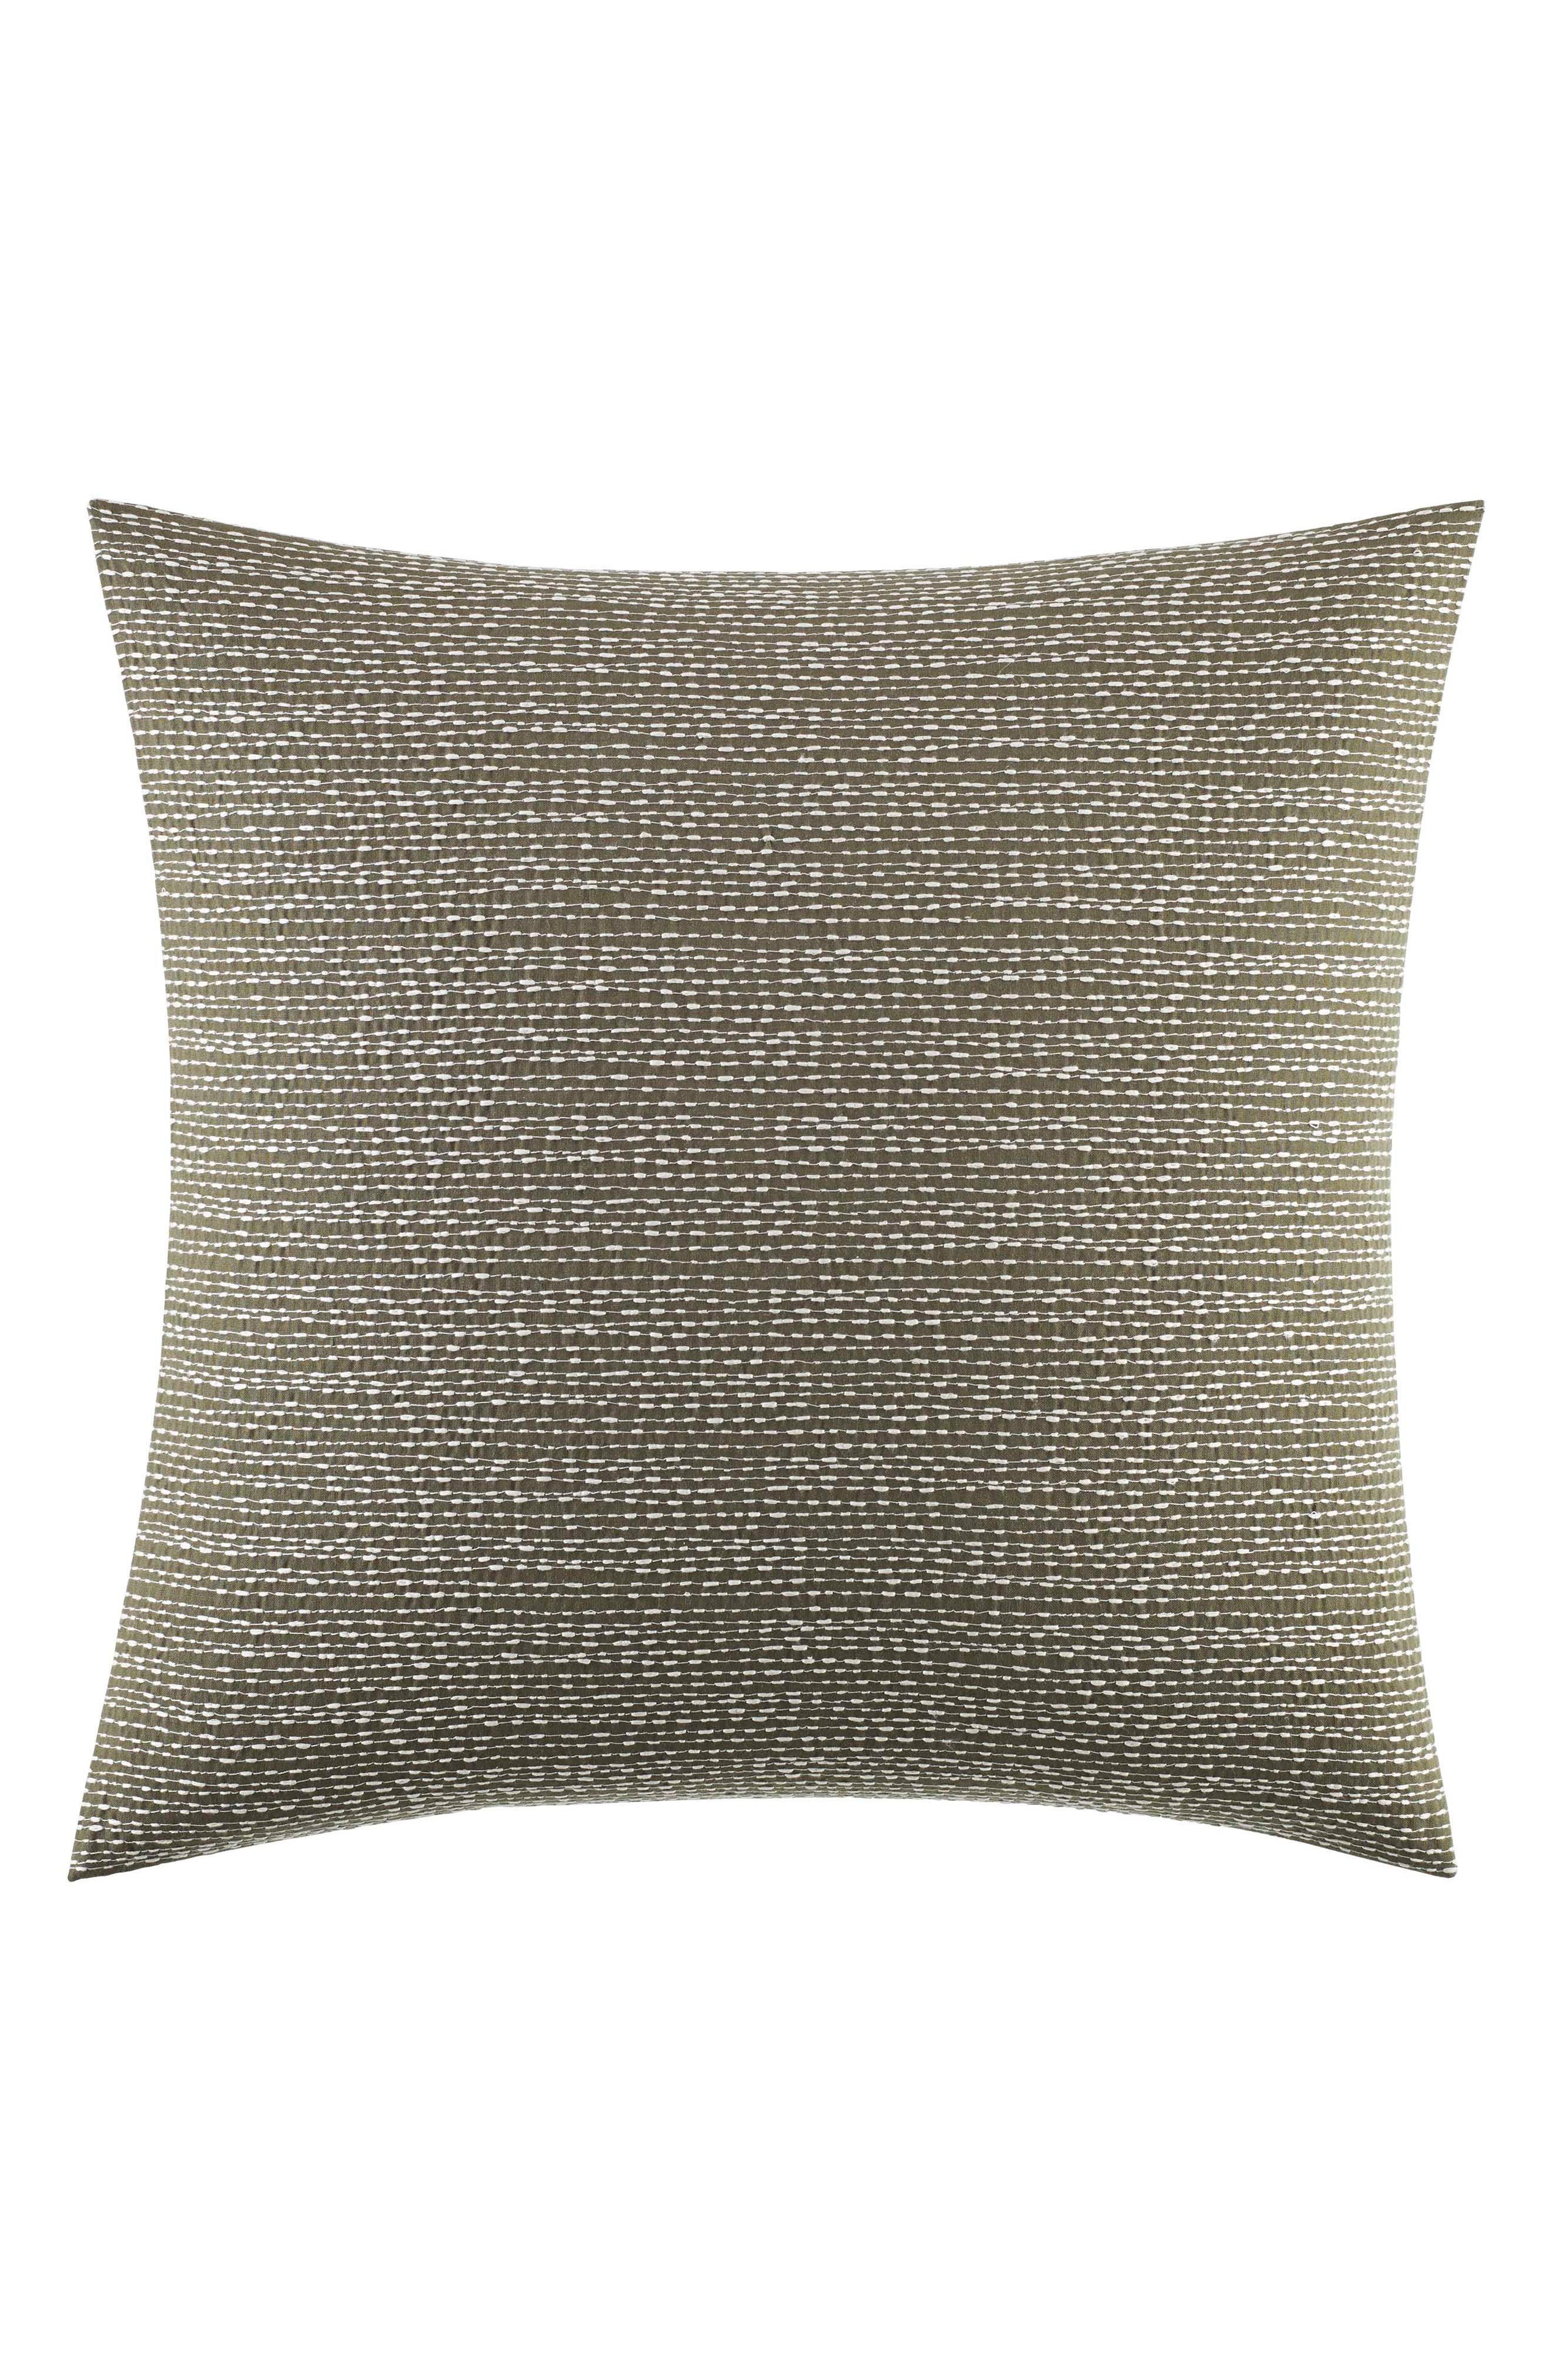 Dragonfly Accent Pillow,                             Main thumbnail 1, color,                             300